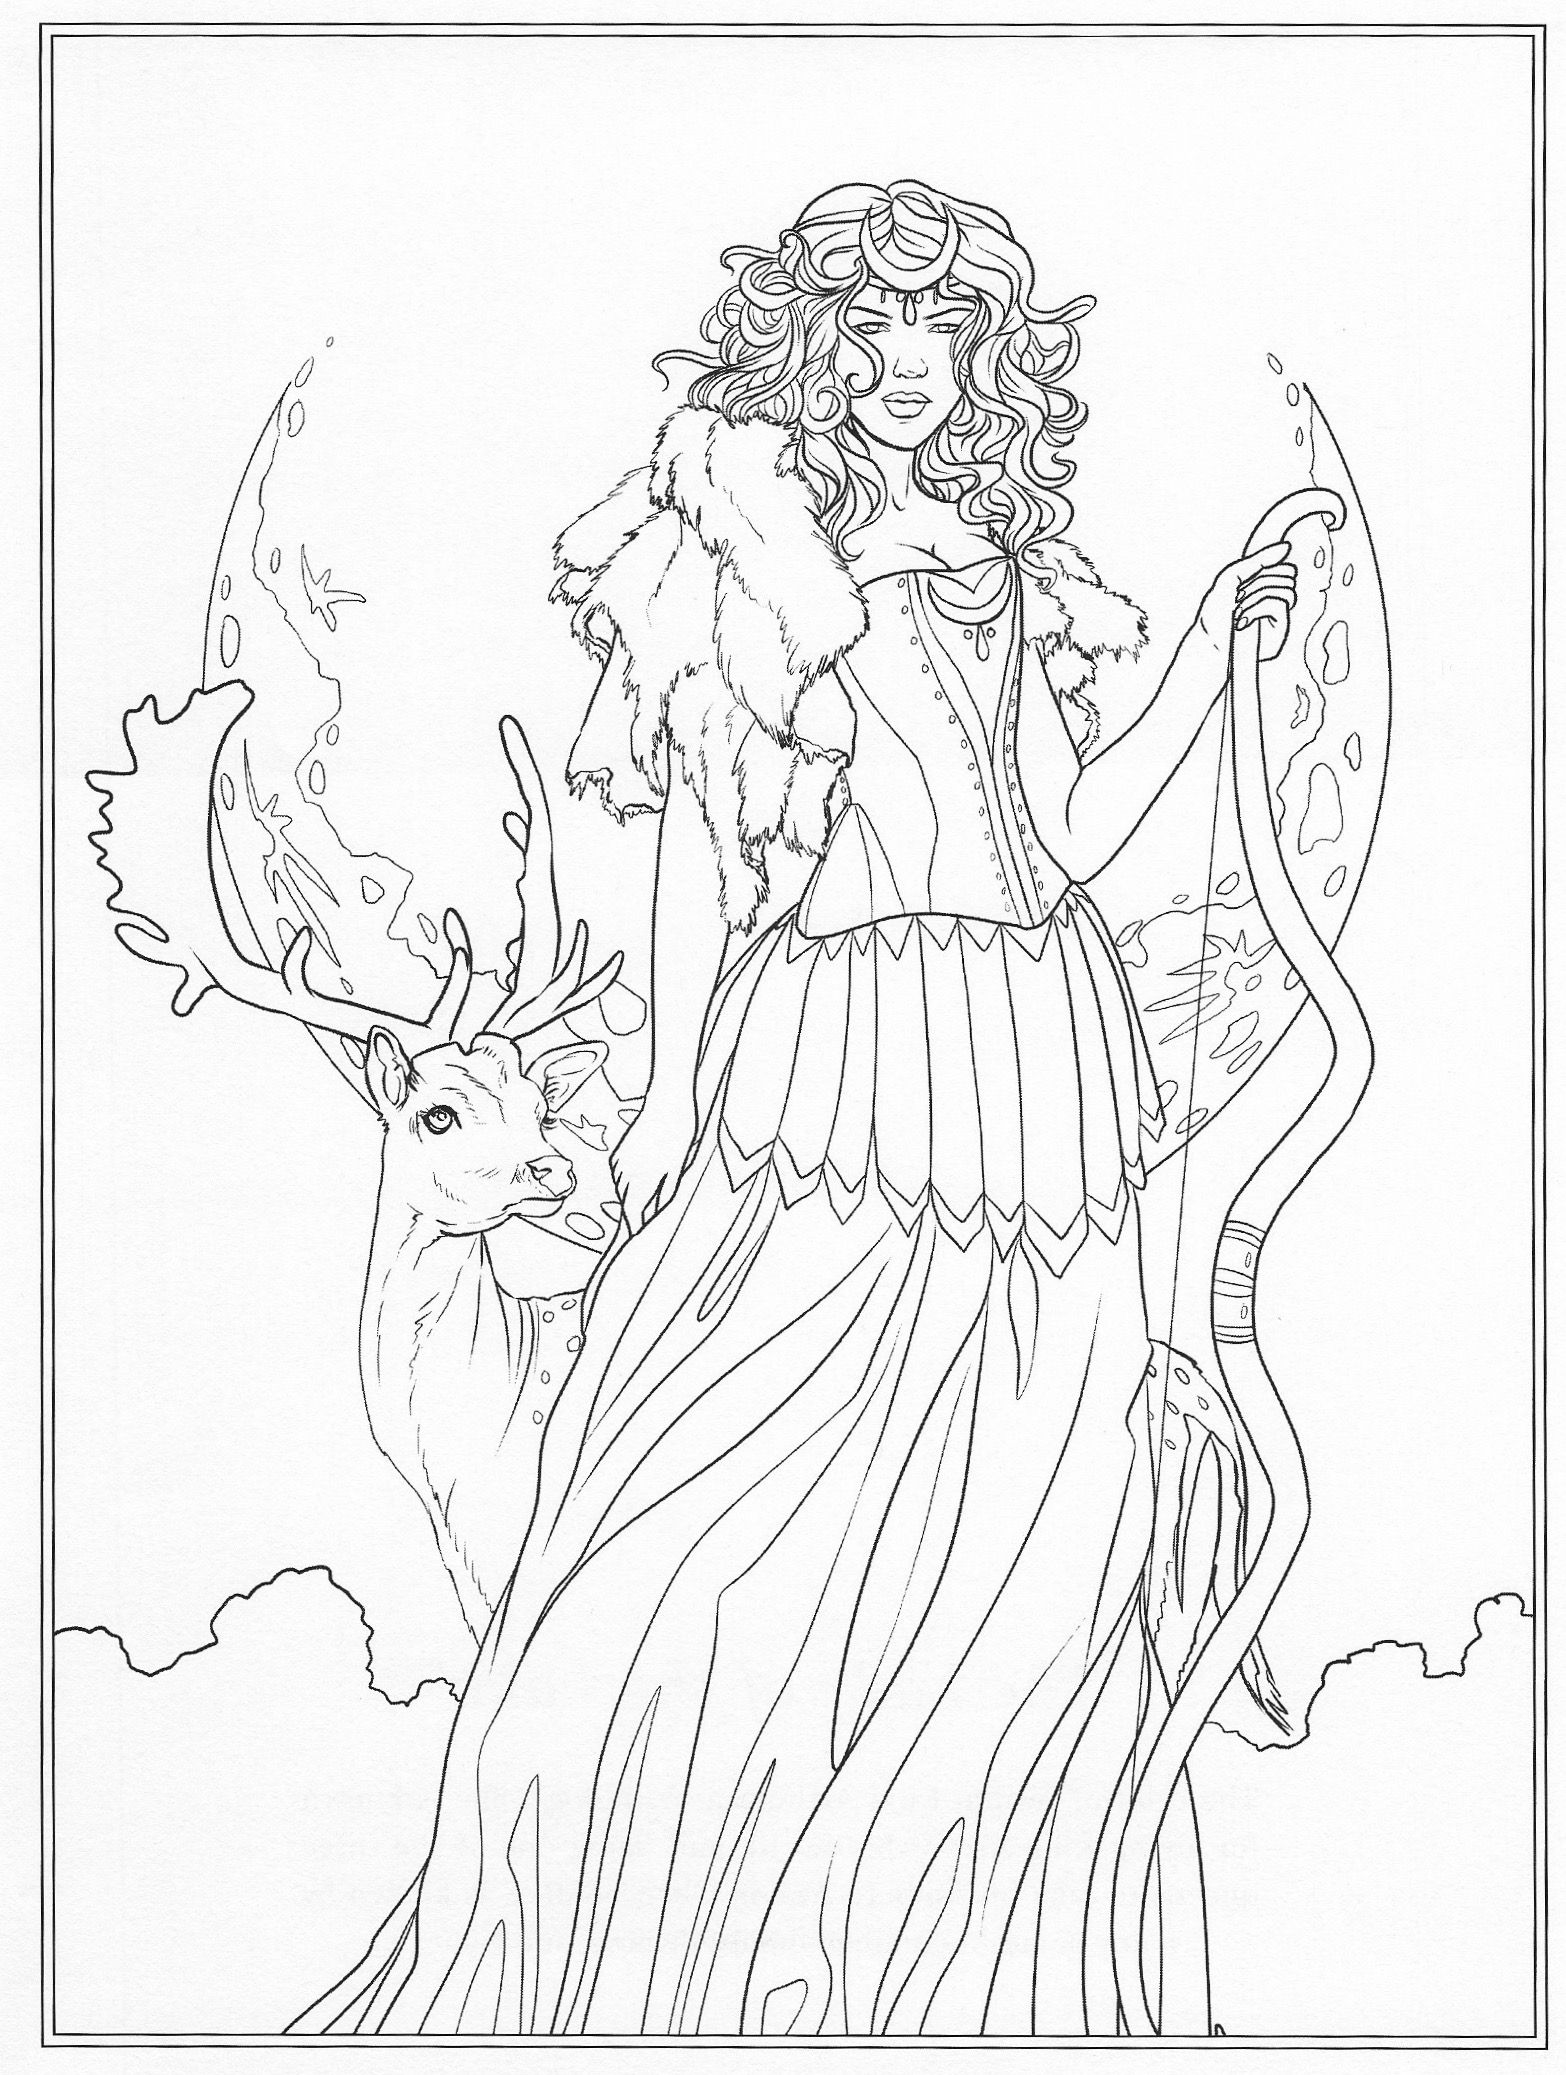 Pin By Val Wilson On Coloring Pages Pinterest Picture Mix Pagan Coloring Pages